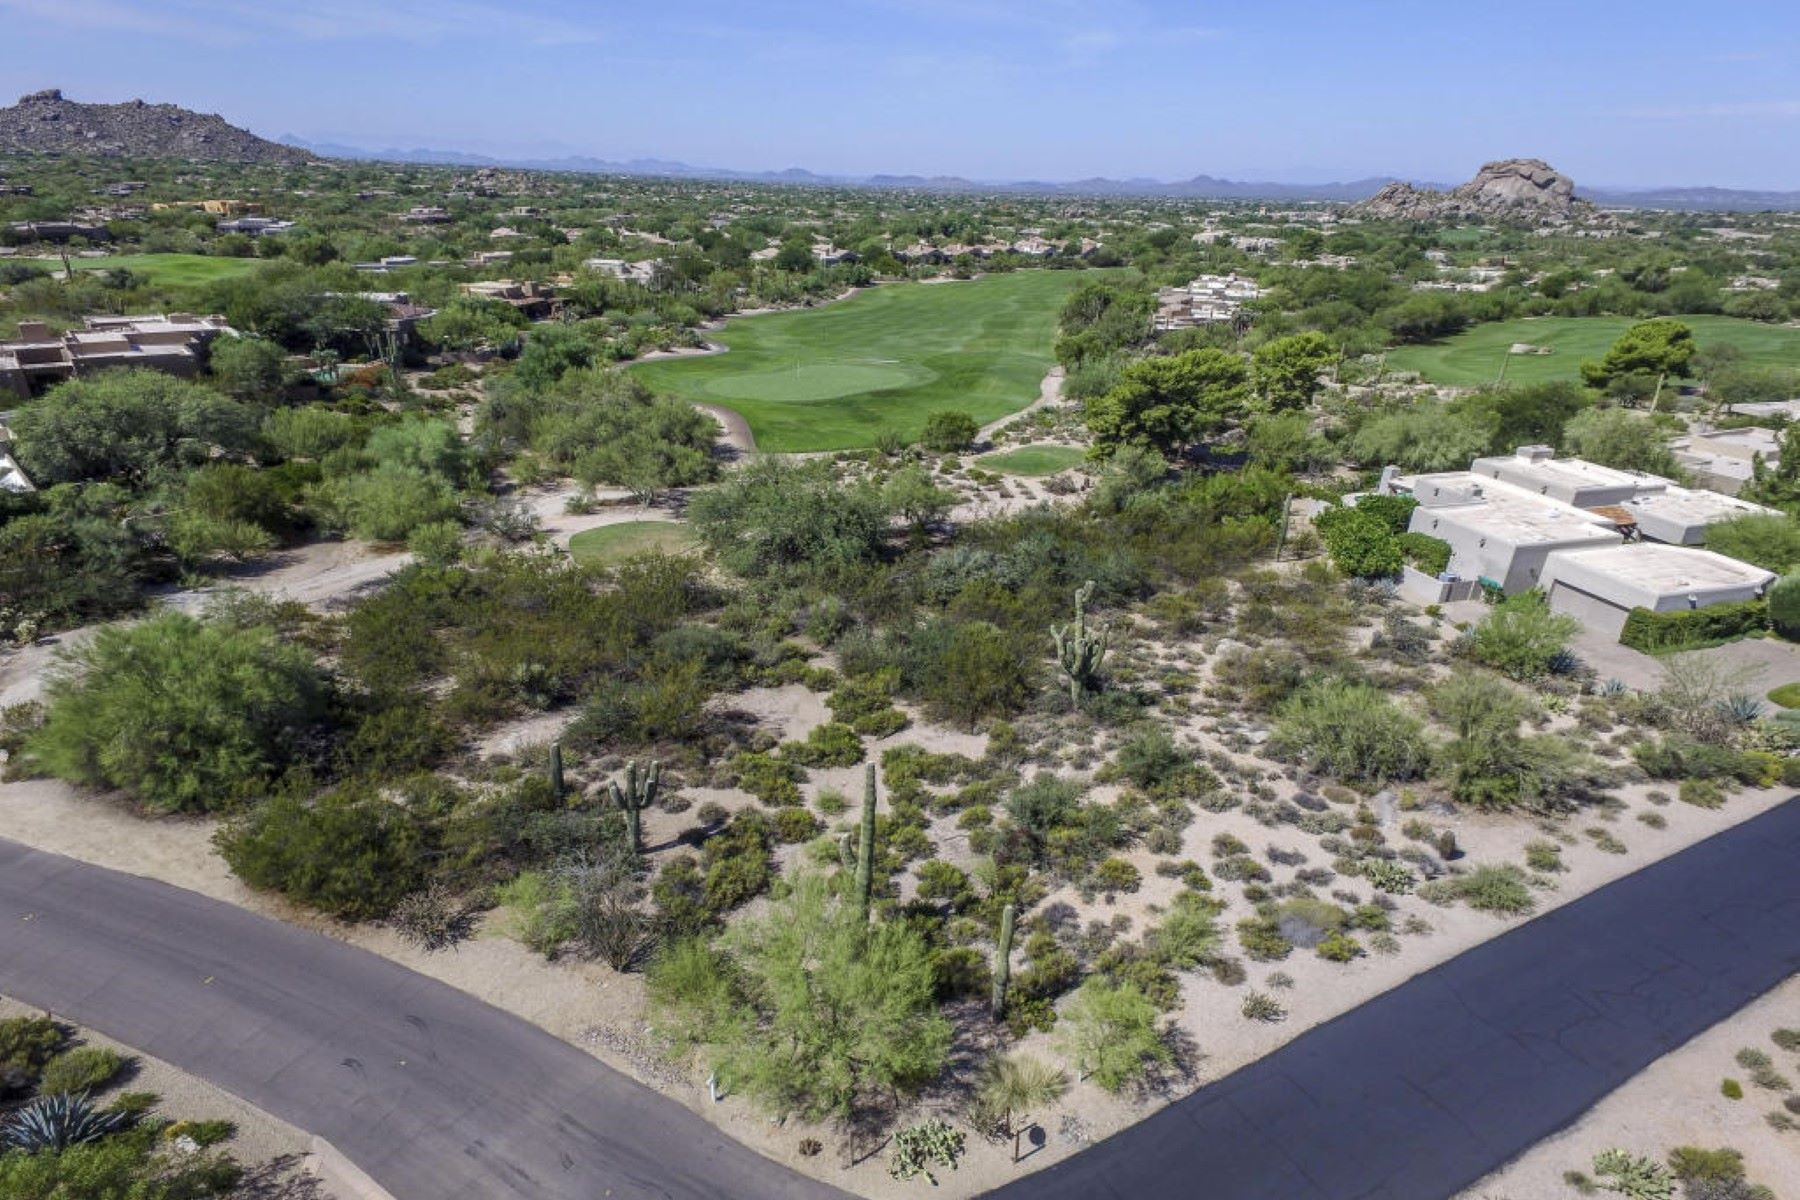 Land for Sale at Fabulous lot looking down the 10th and 11th fairway of the Boulders North course 3209 E Arroyo Seco Rd #21 Carefree, Arizona, 85377 United States